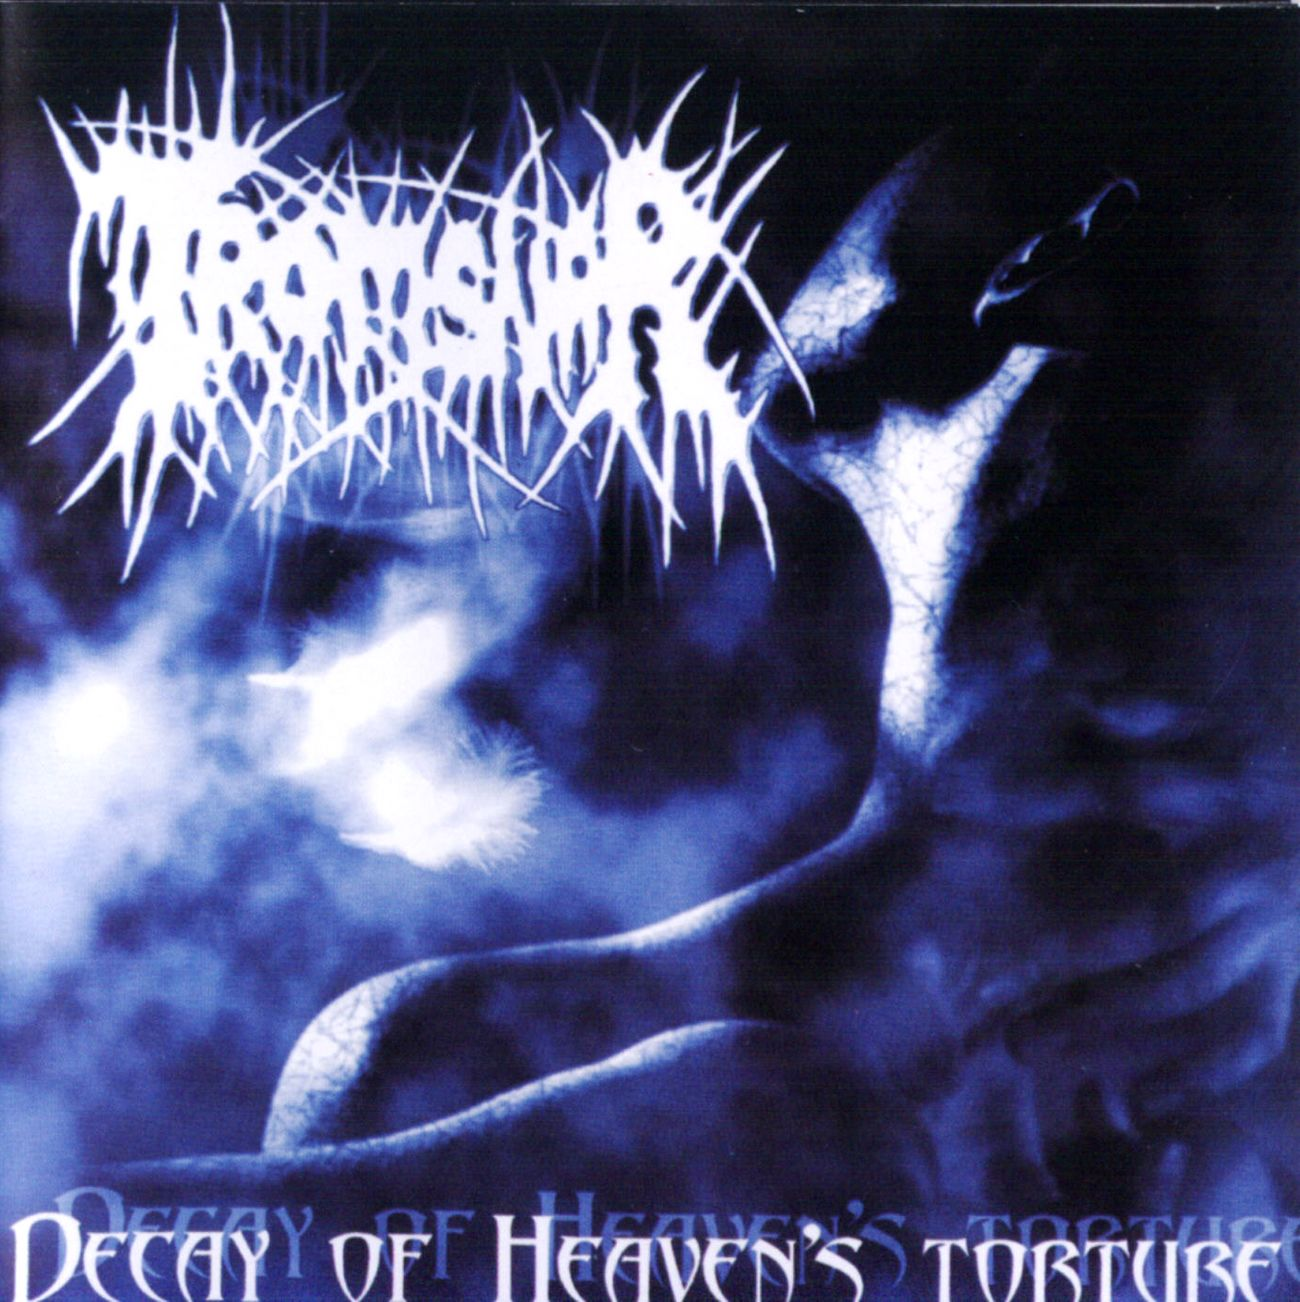 Tromsnar - Decay of Heaven's Torture